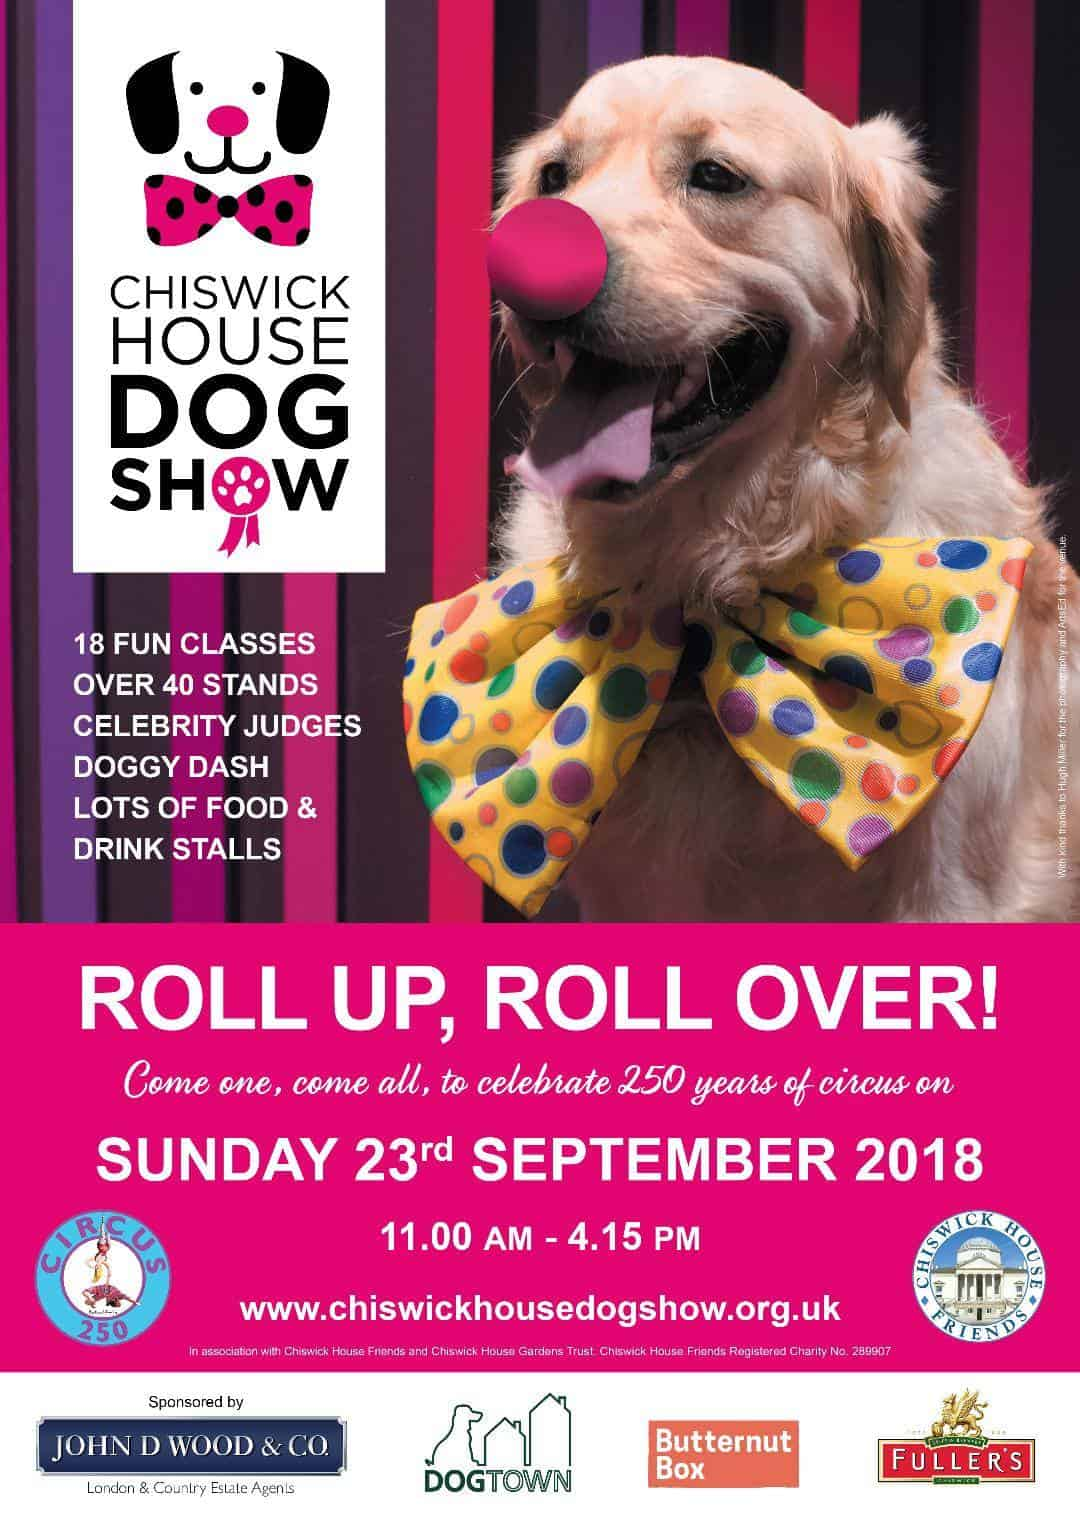 Chiswick House Dog Show 2018